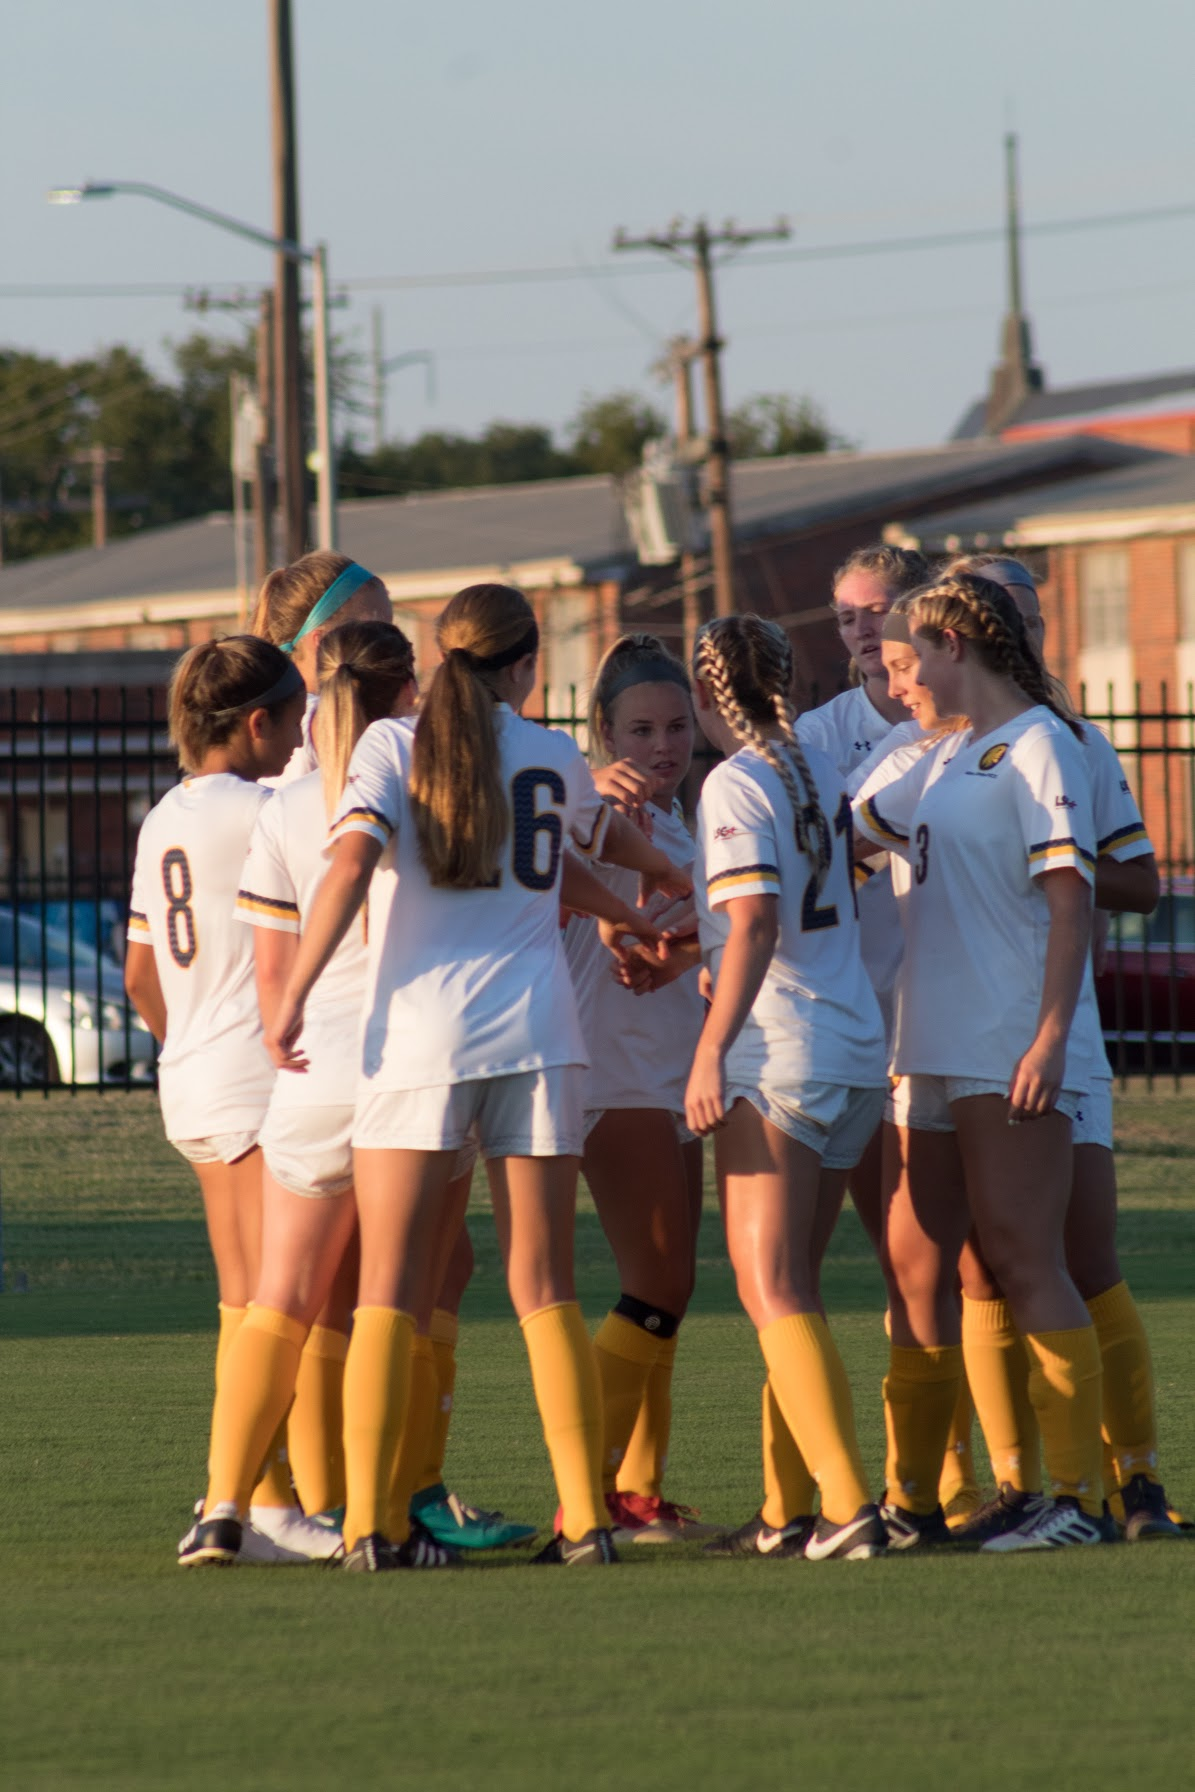 The Lions prepare to take the pitch against the Ouachita Baptist Tigers.